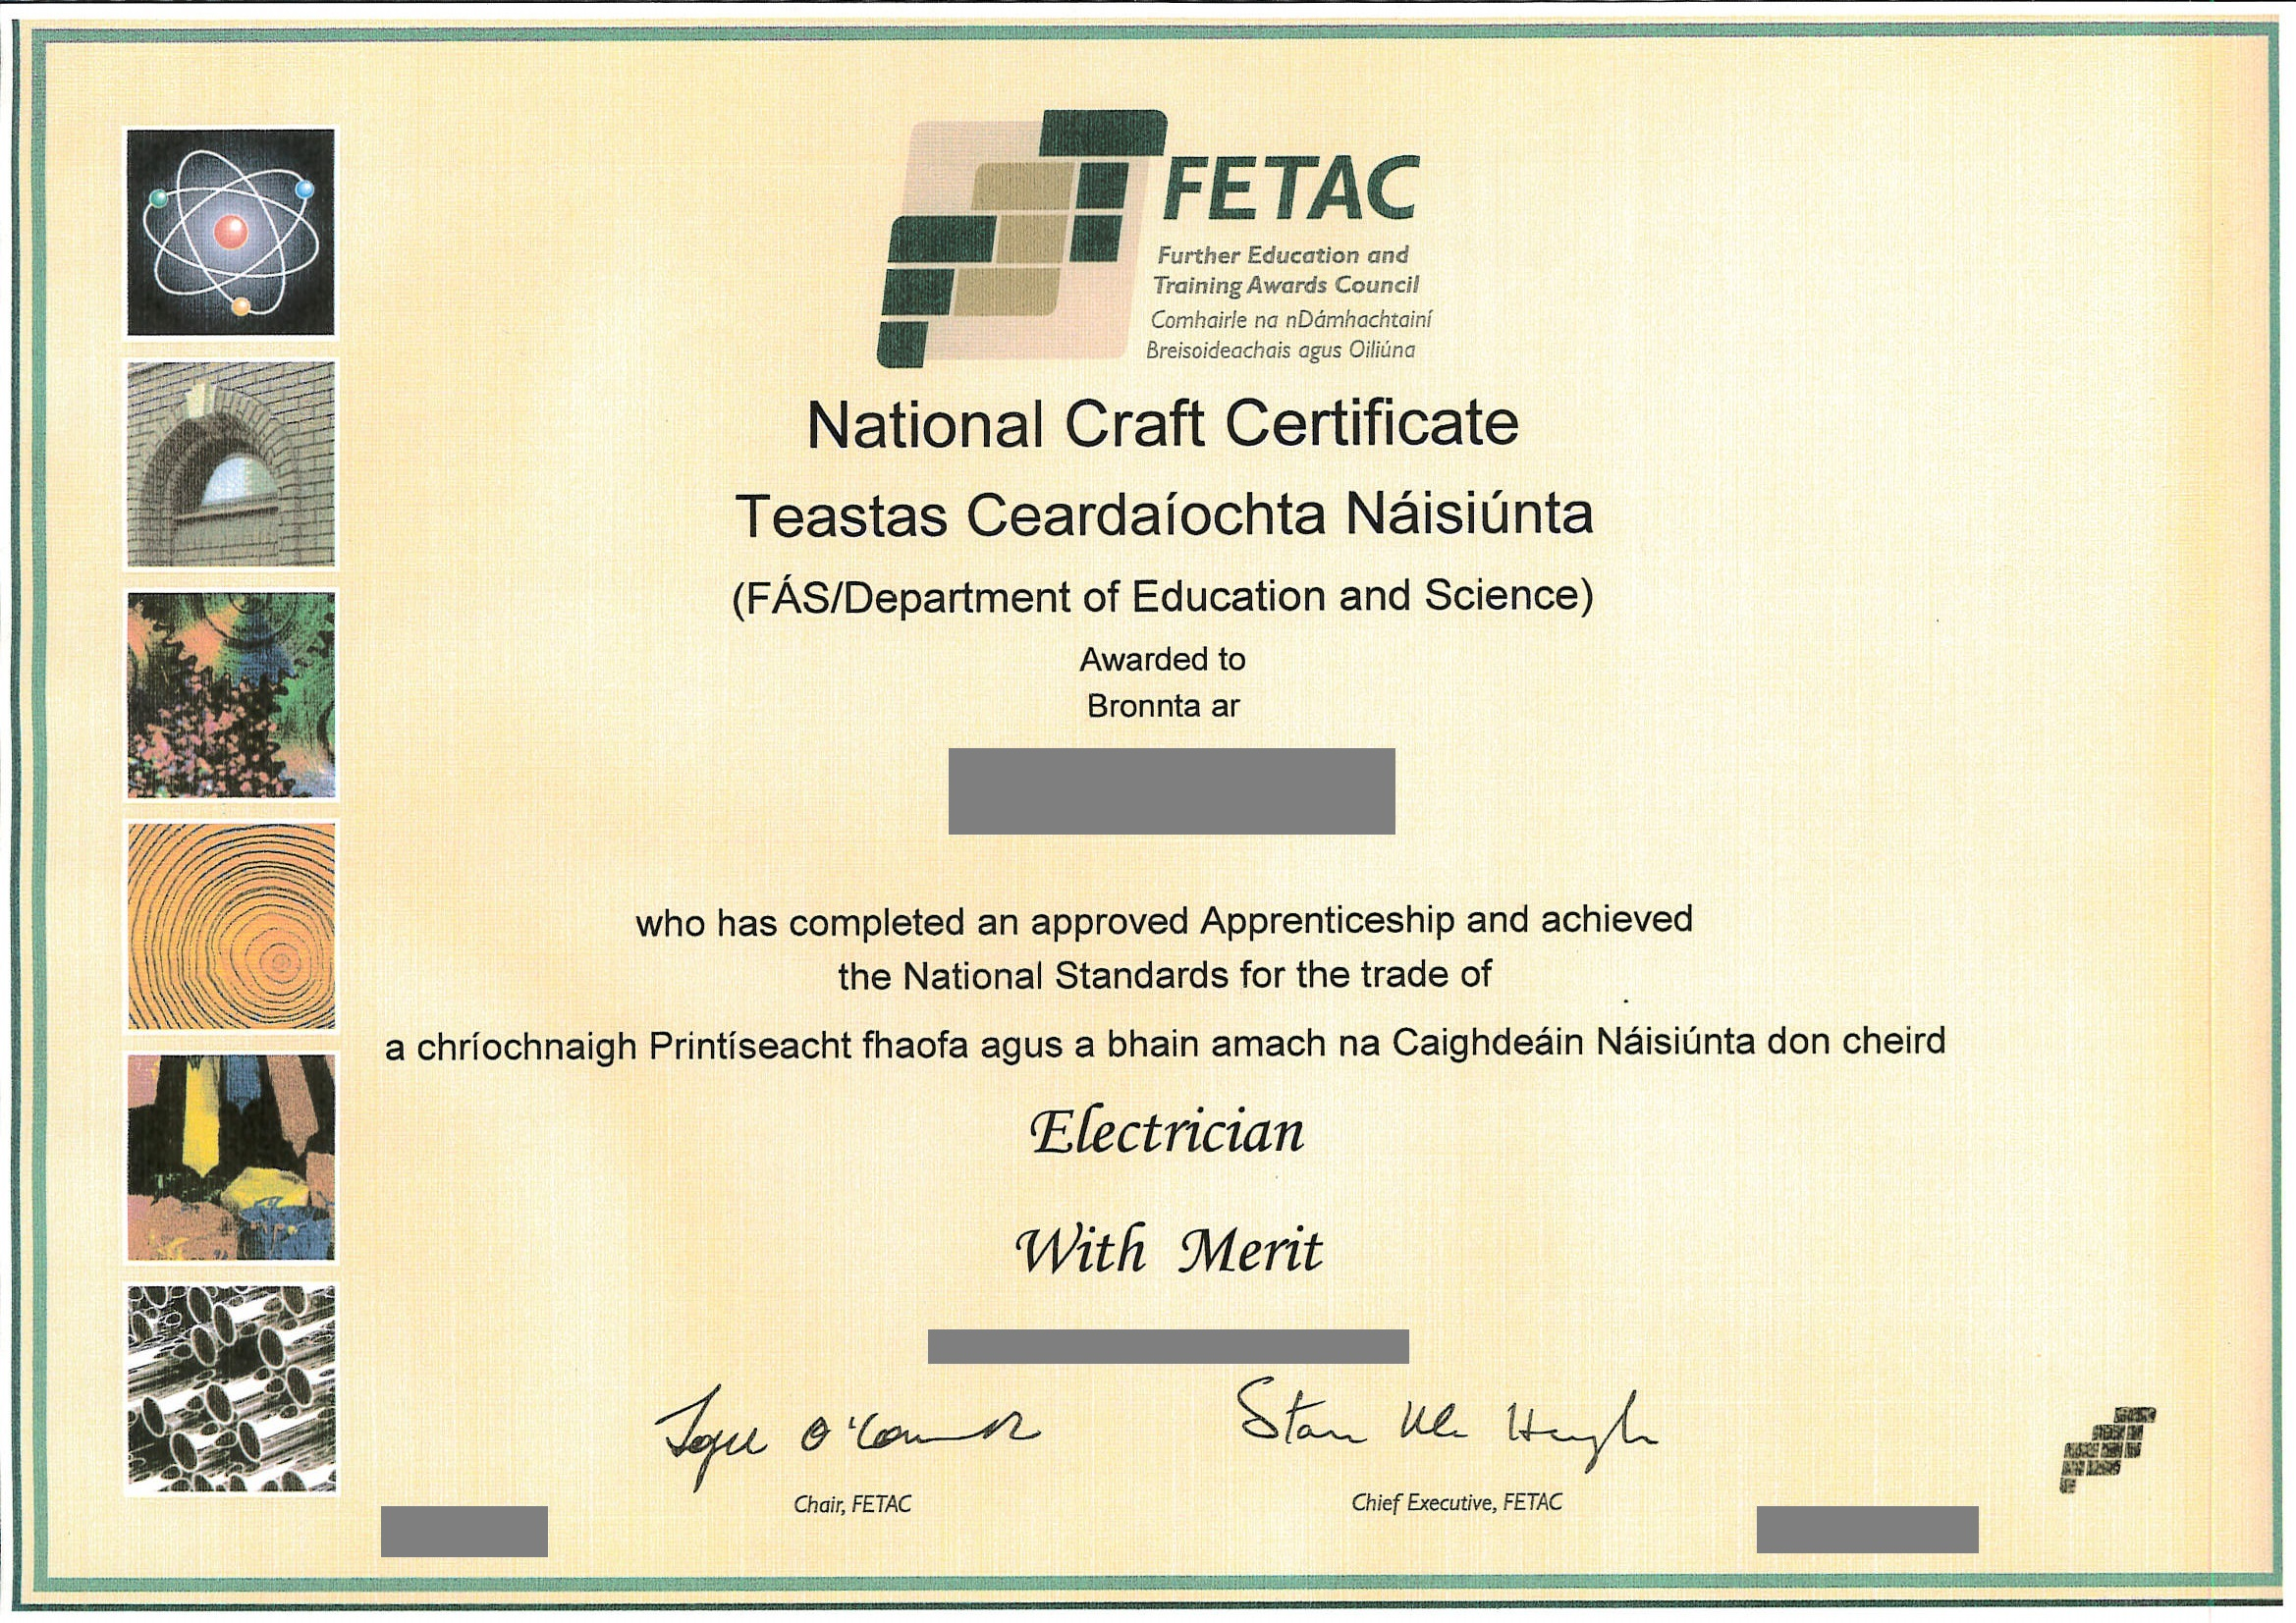 How to join safe electric contractors area a copy of your nominated qualified certifiers certification of the successfully completed verification and certification of electrical installations xflitez Image collections